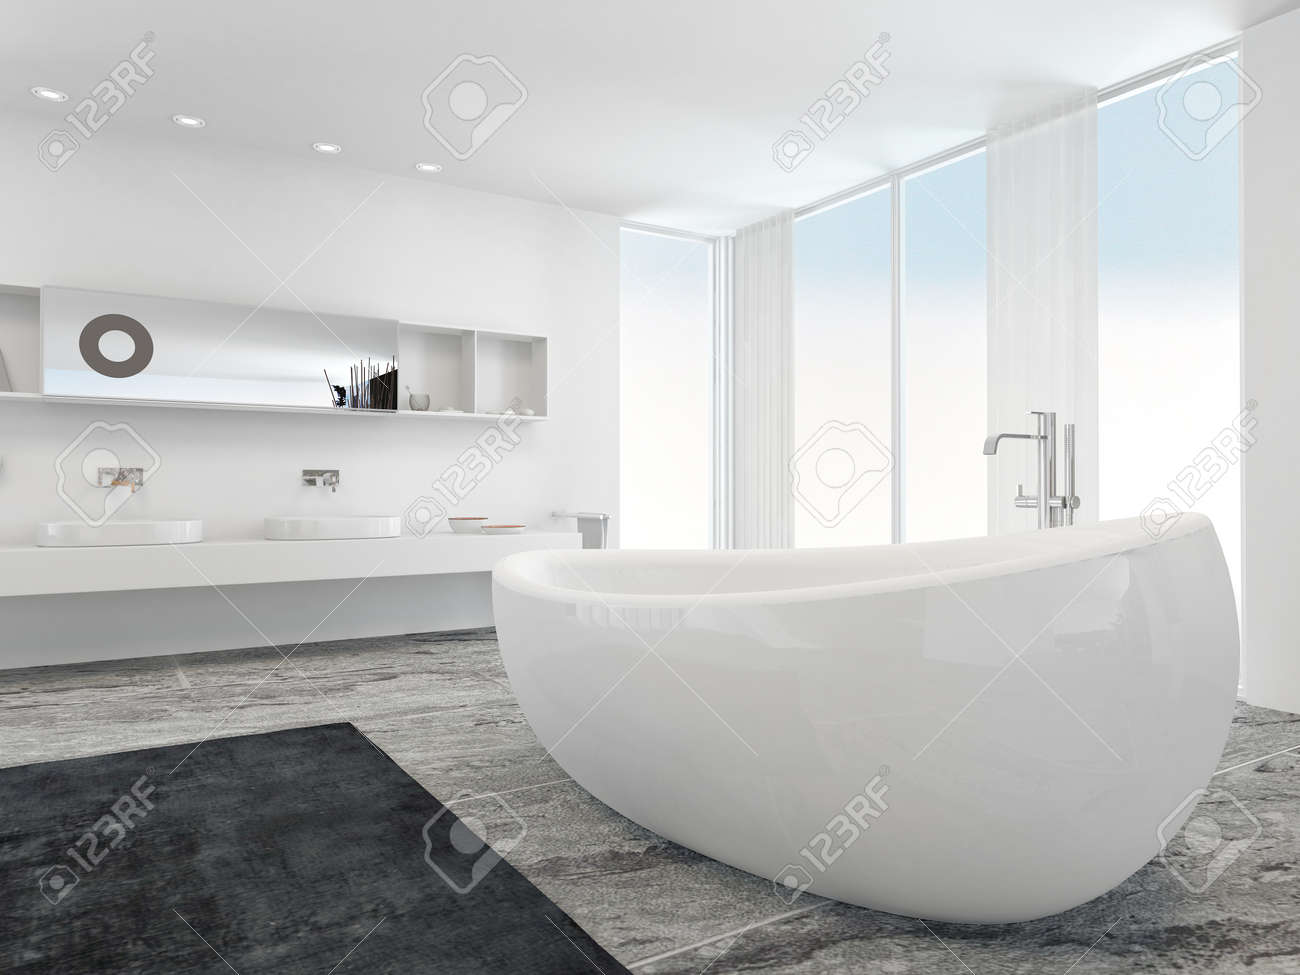 spacious all white bathroom. Stock Photo - Very Spacious Bright Modern Bathroom Interior With Floor To Ceiling Plate Glass Windows On Two Sides And A Double Wall-mounted Vanity Unit All White N